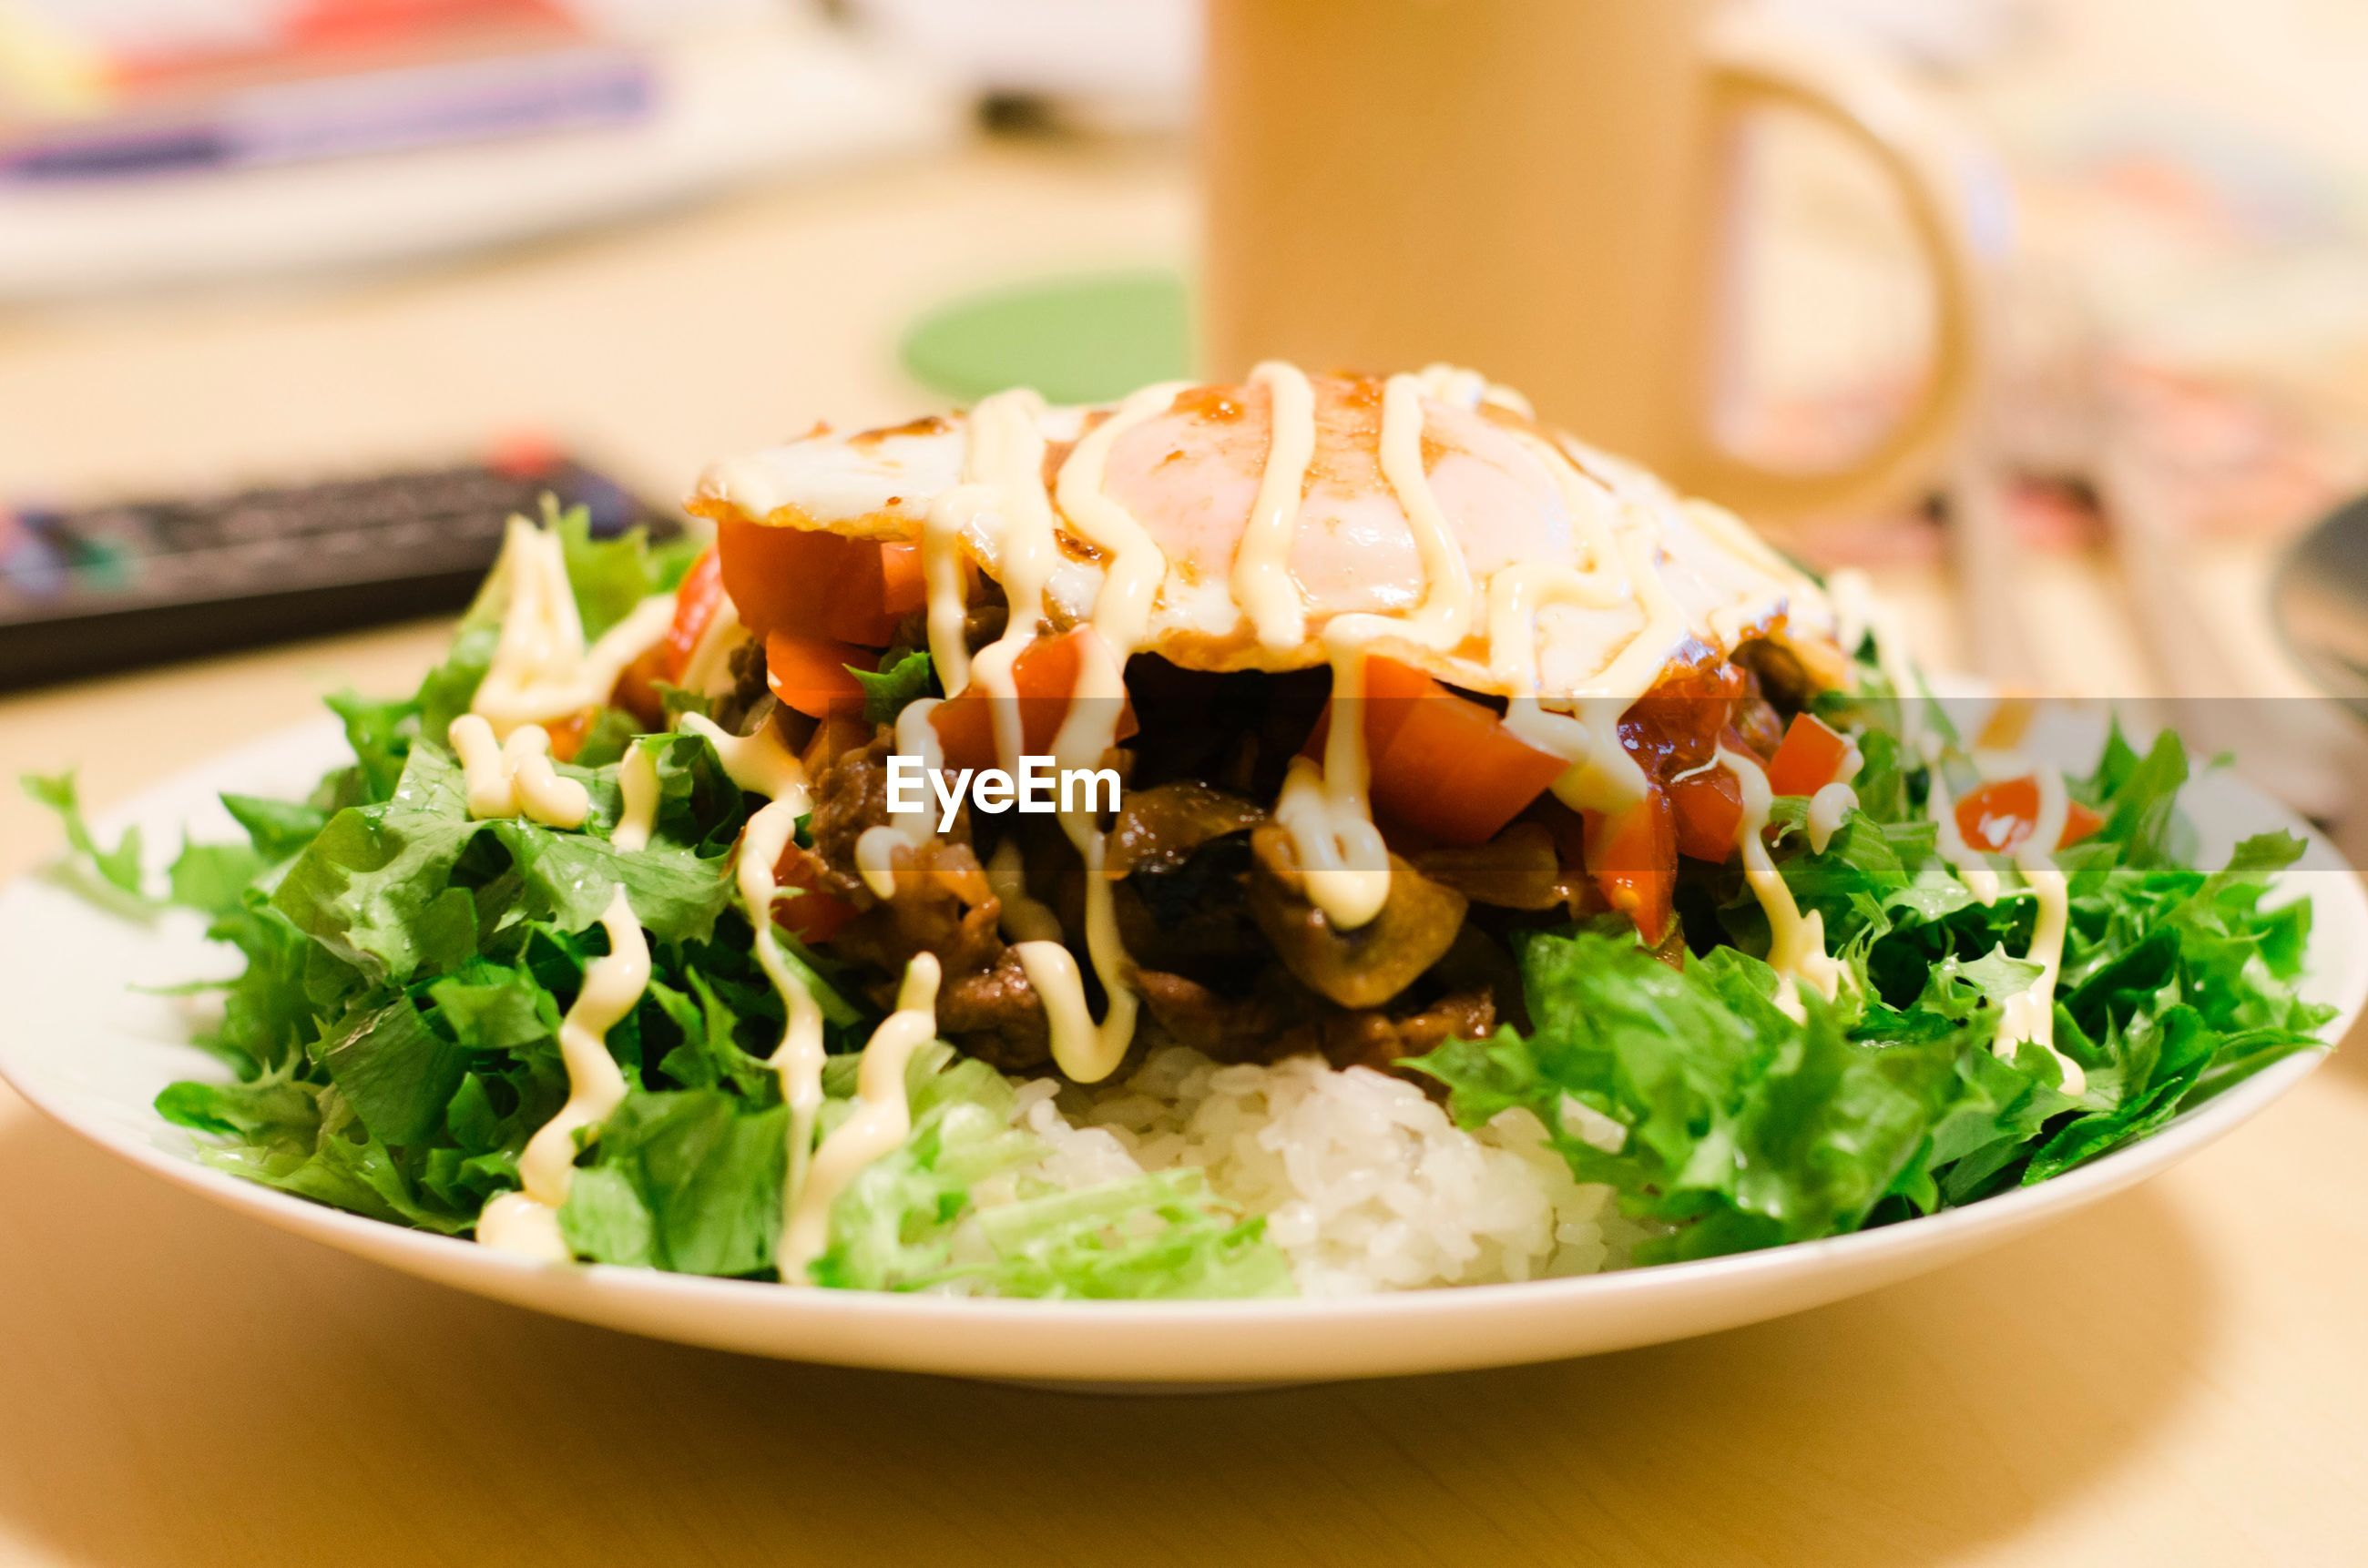 Close-up of taco rice salad in plate on table